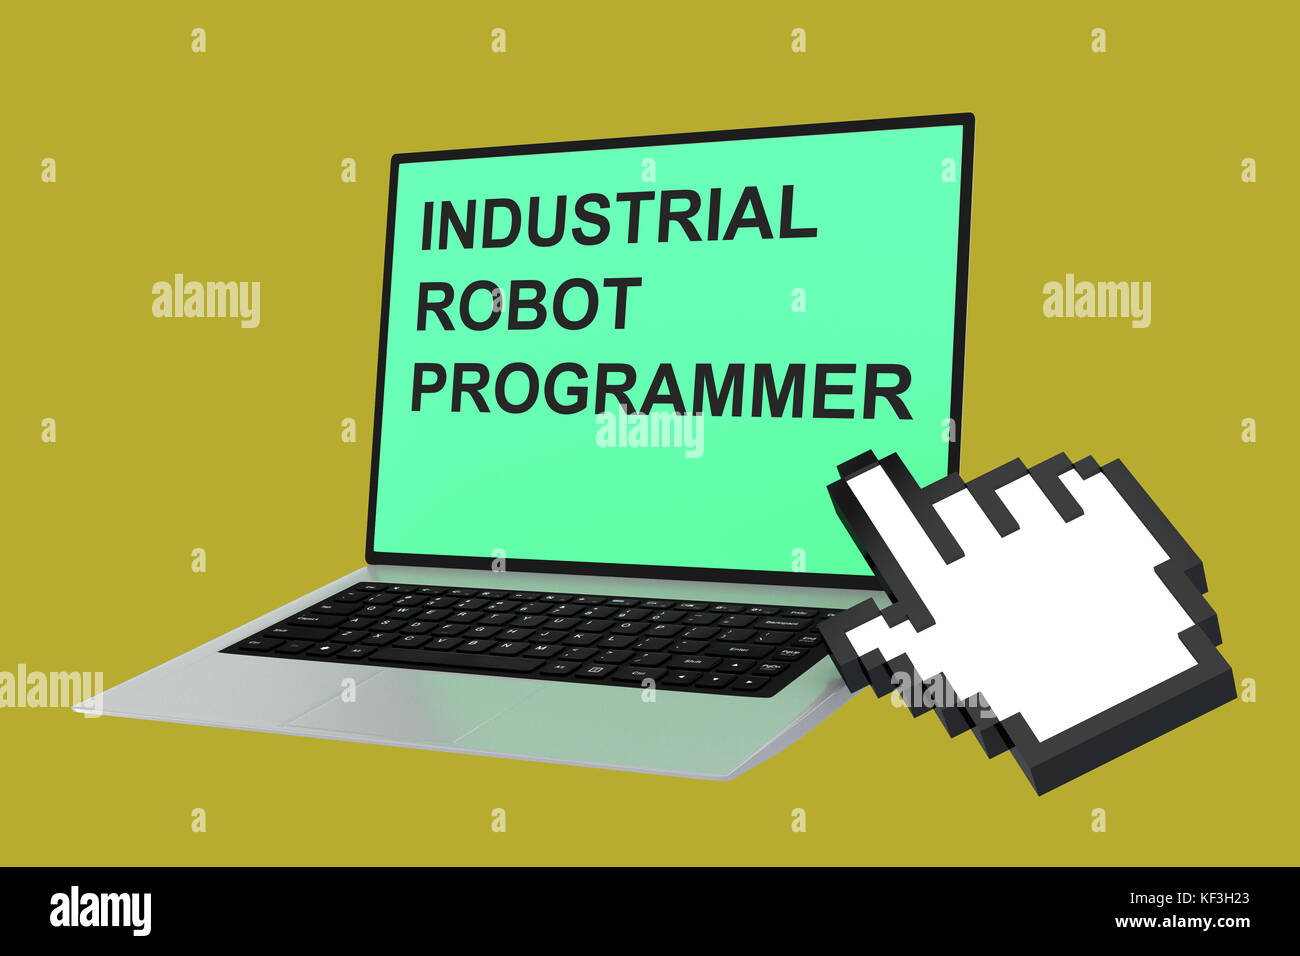 3D illustration of 'INDUSTRIAL ROBOT PROGRAMMER' script with pointing hand icon pointing at the laptop screen - Stock Image